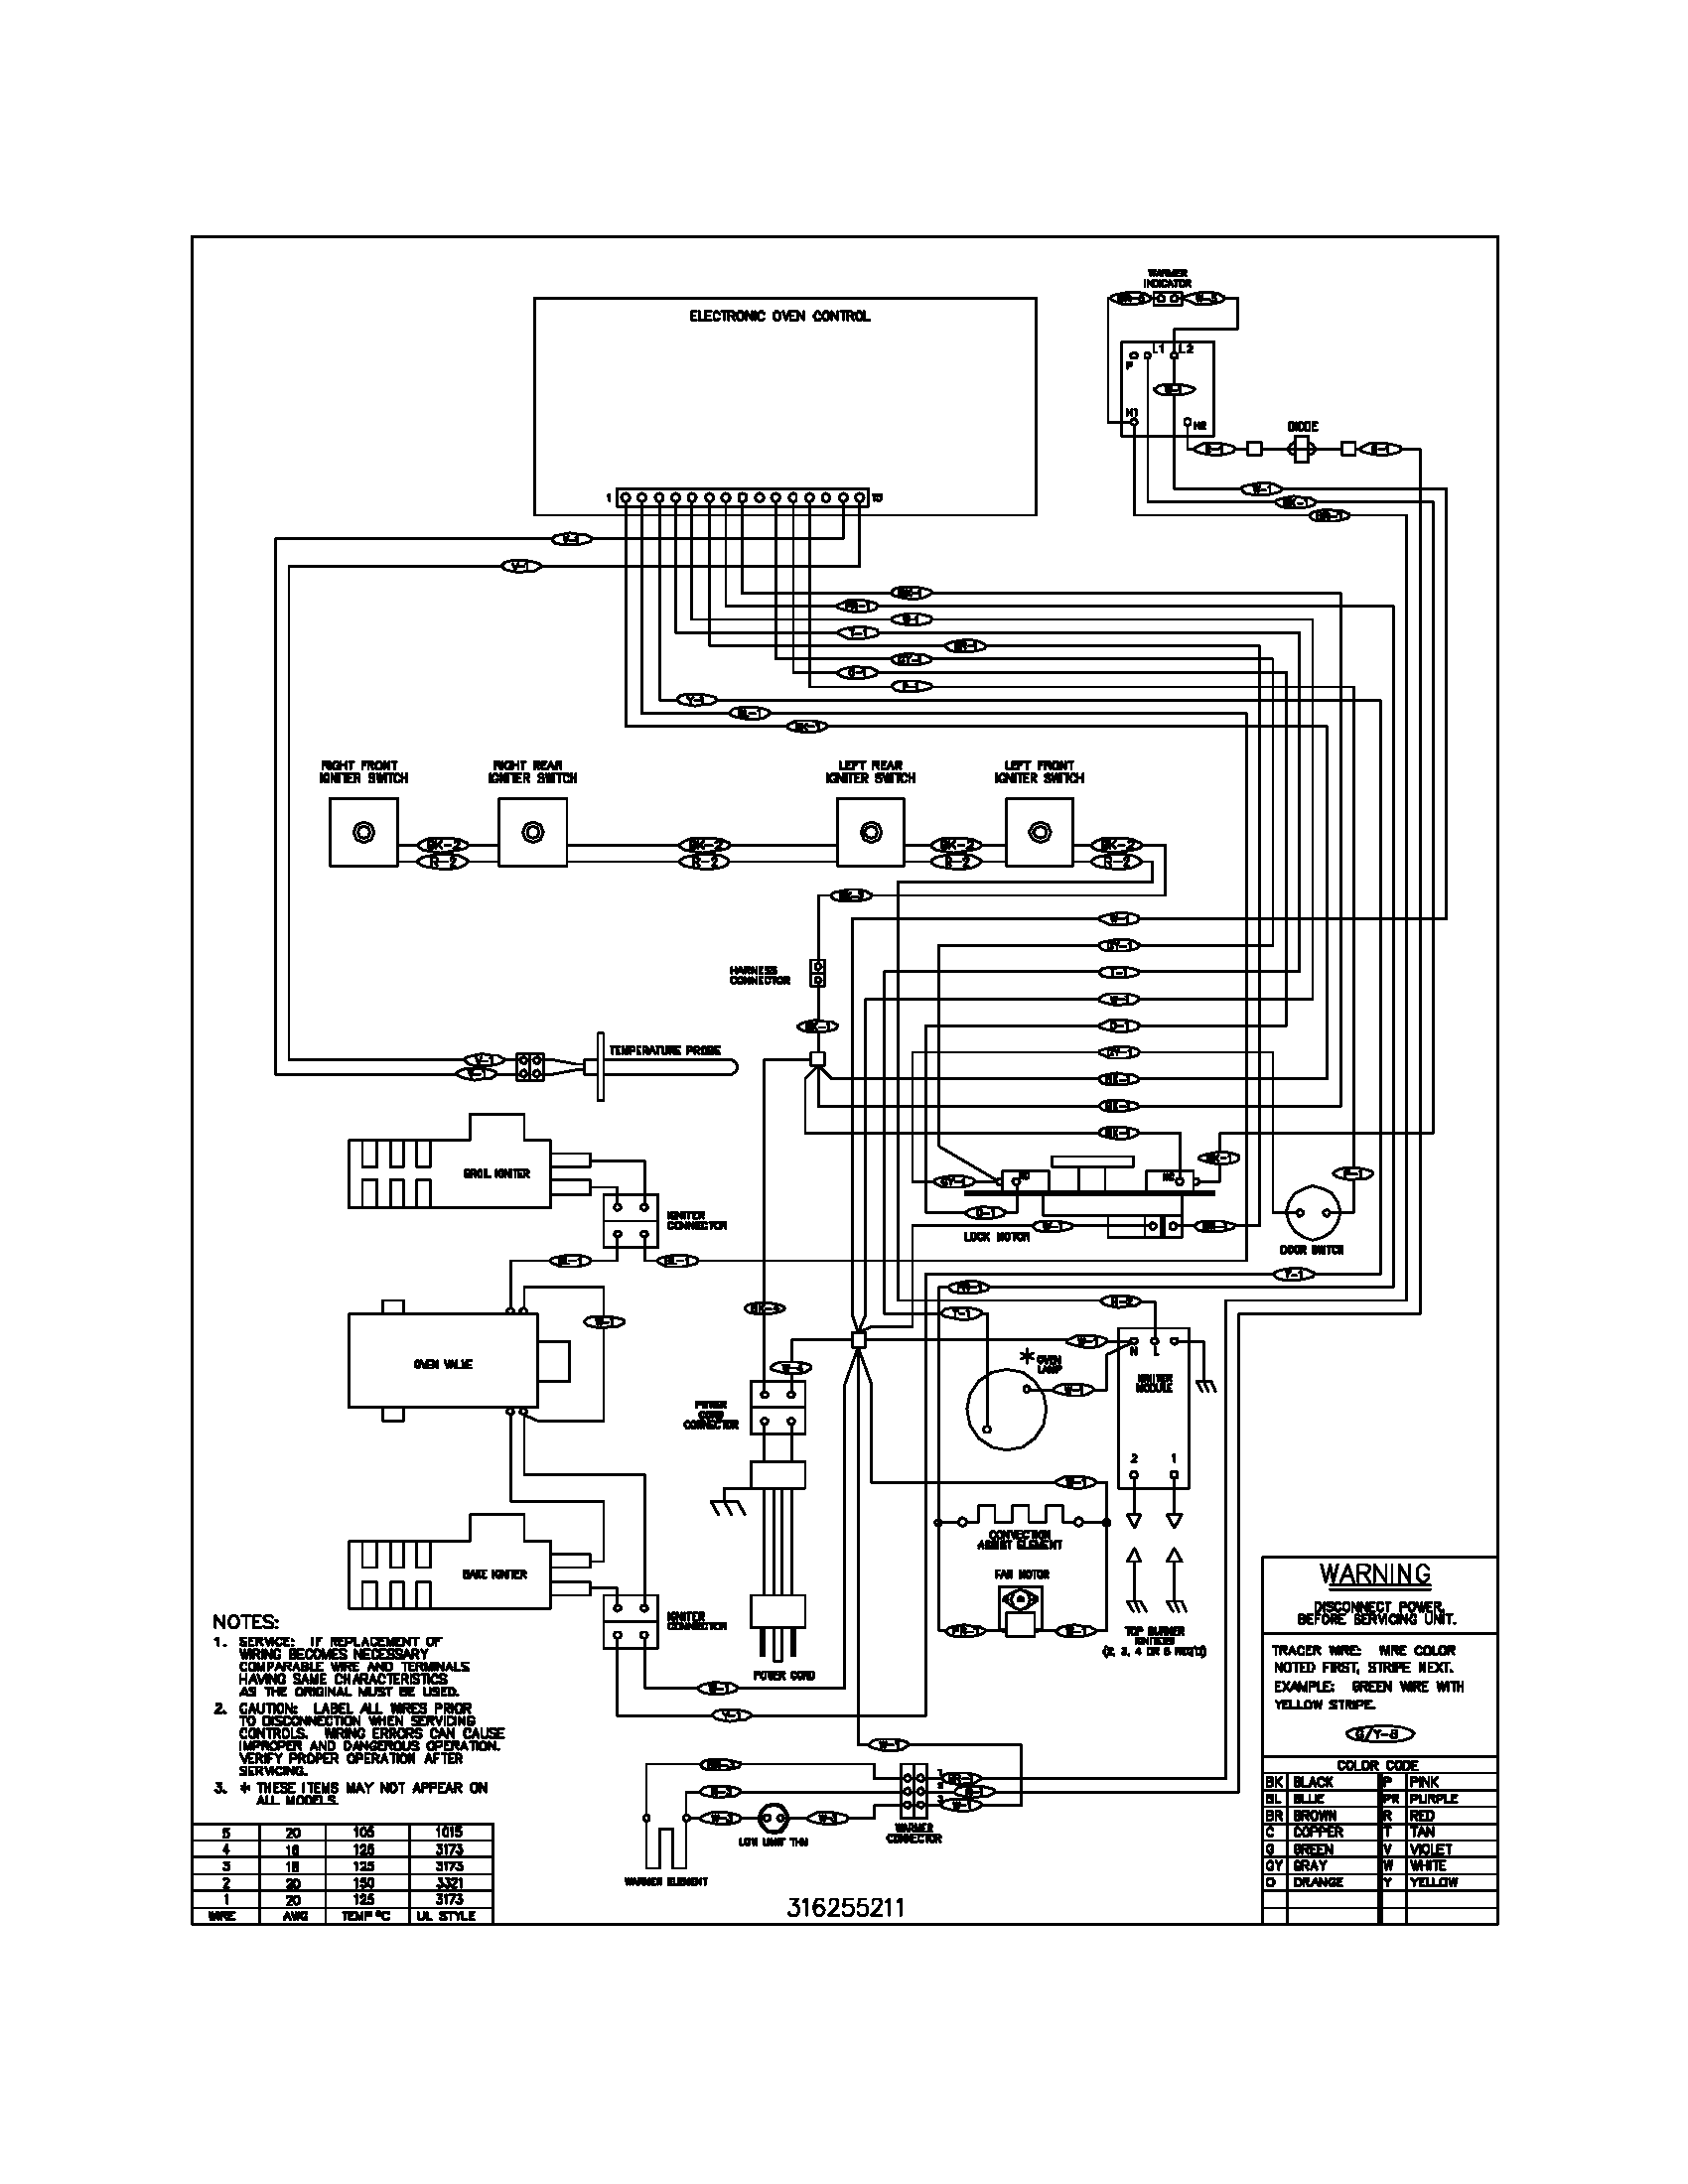 wiring diagram parts frigidaire plgf389ccc gas range timer stove clocks and appliance  at mifinder.co